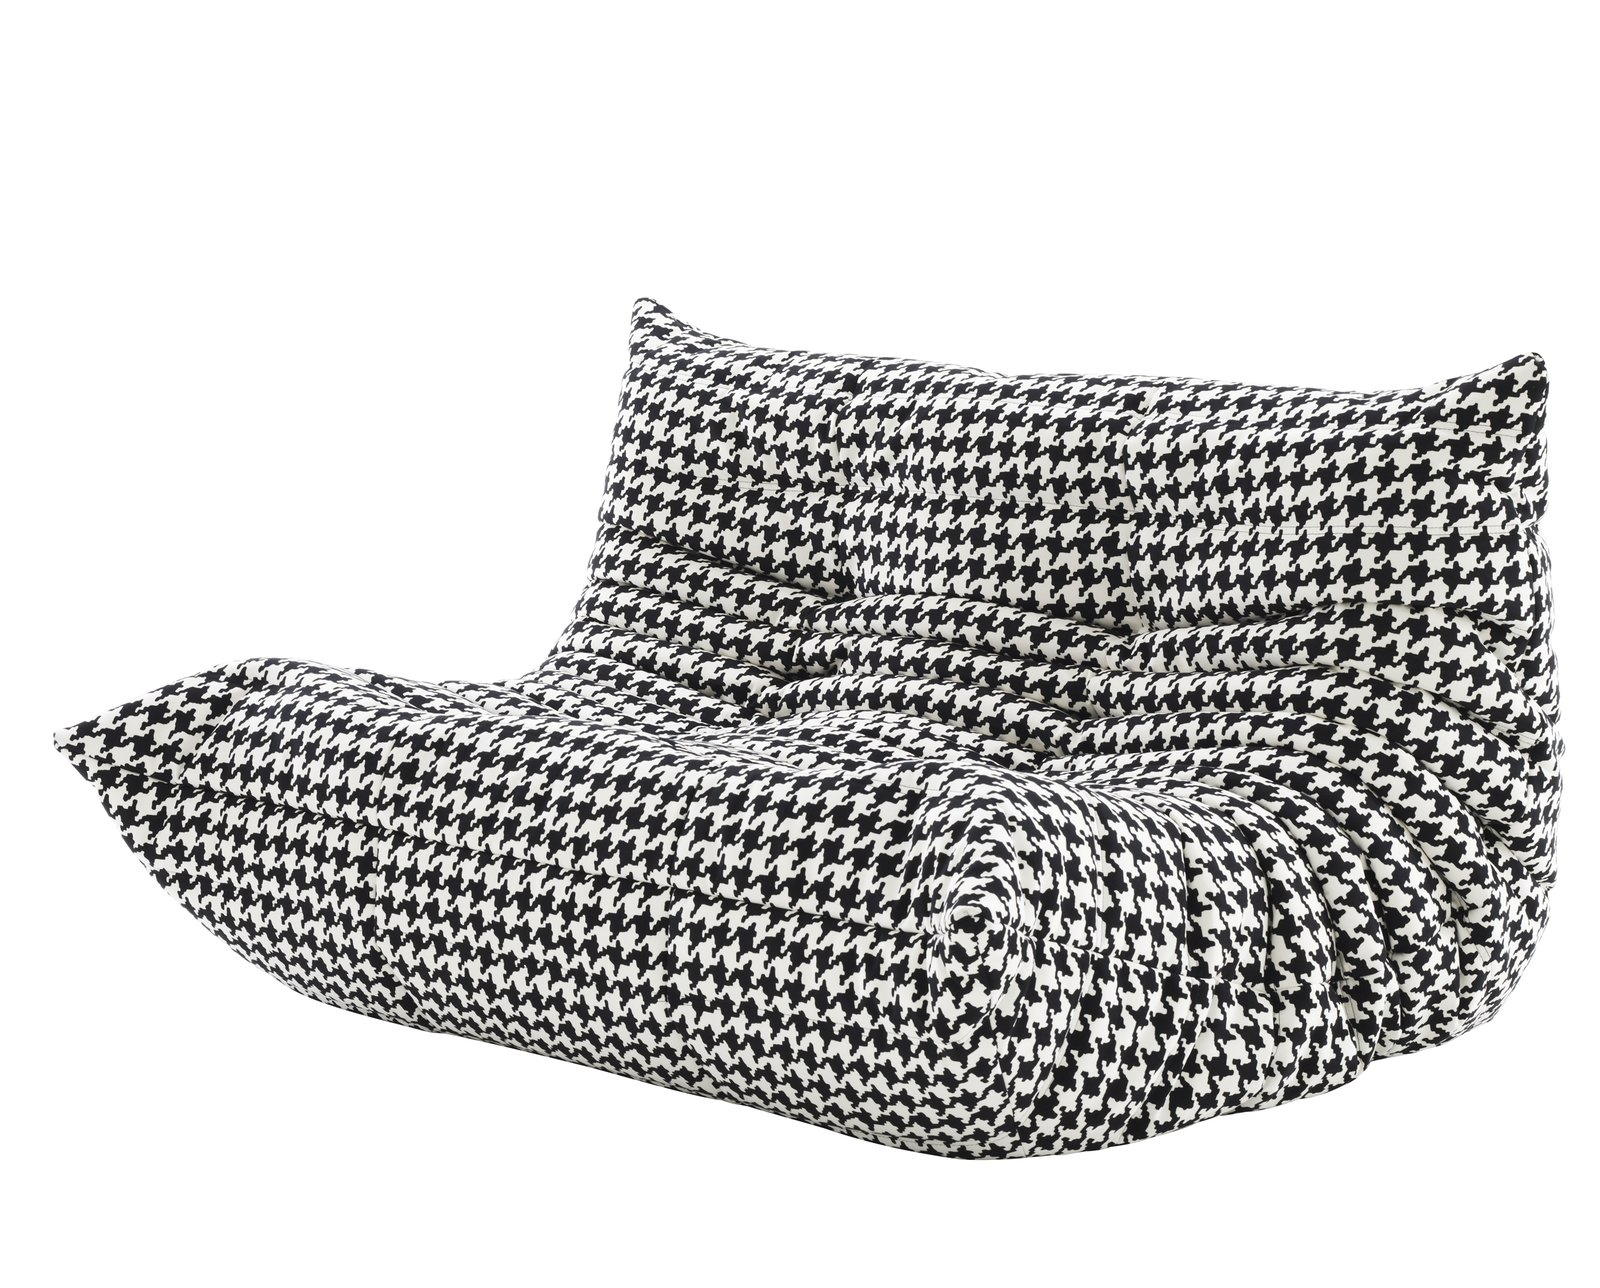 To celebrate 40 years of Michel Ducharoy's iconic Togo sofa, Ligne Roset is releasing the collection in two new upholstery patterns, including the black and white houndstooth seen here.  Checking In On WantedDesign 2013 by Sara Carpenter